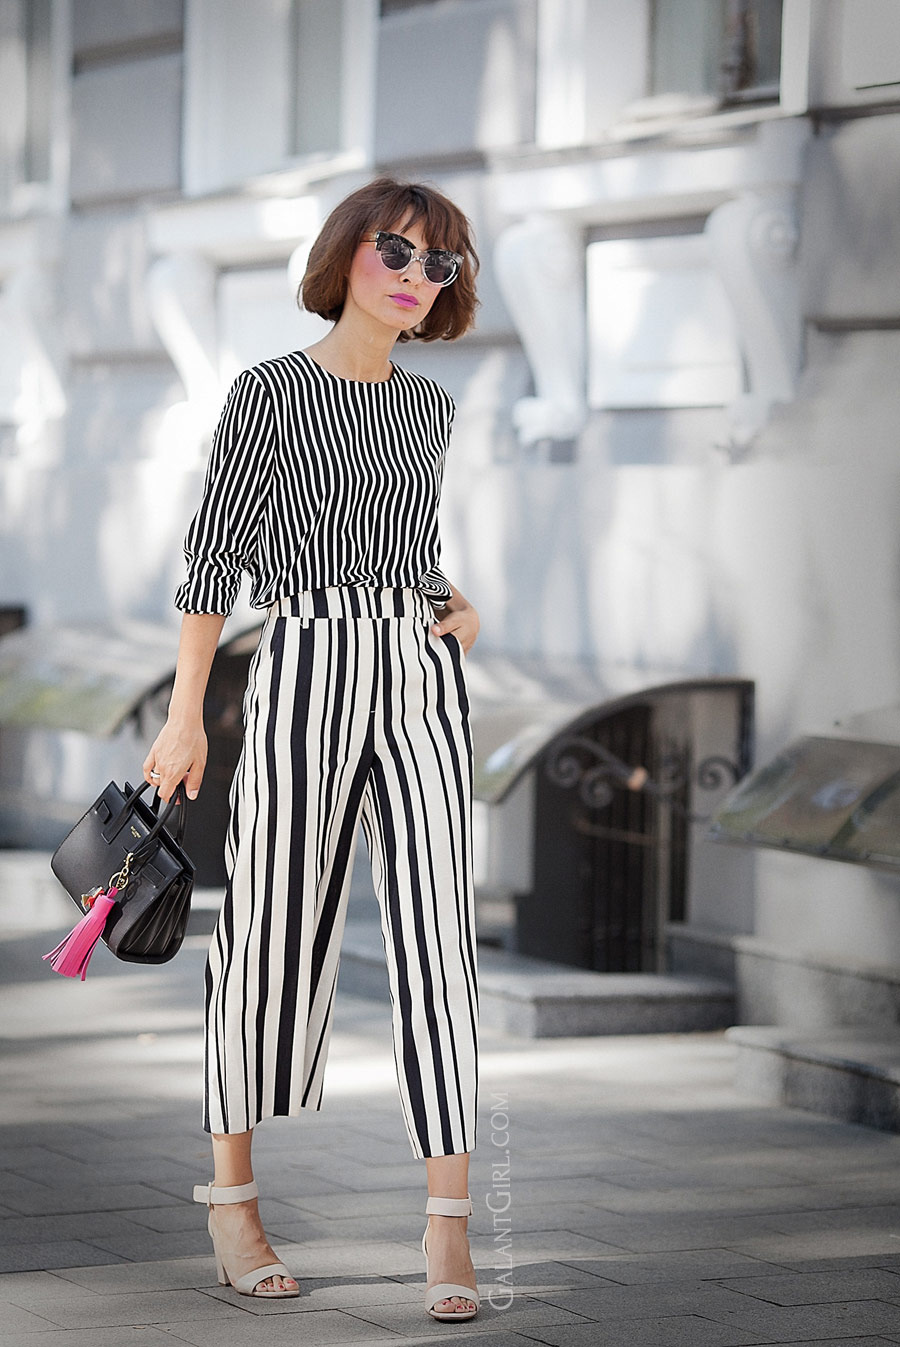 total striped look, striped culottes outfit, culottes outfits, summer outfit ideas, summer styles, ellena galant girl,